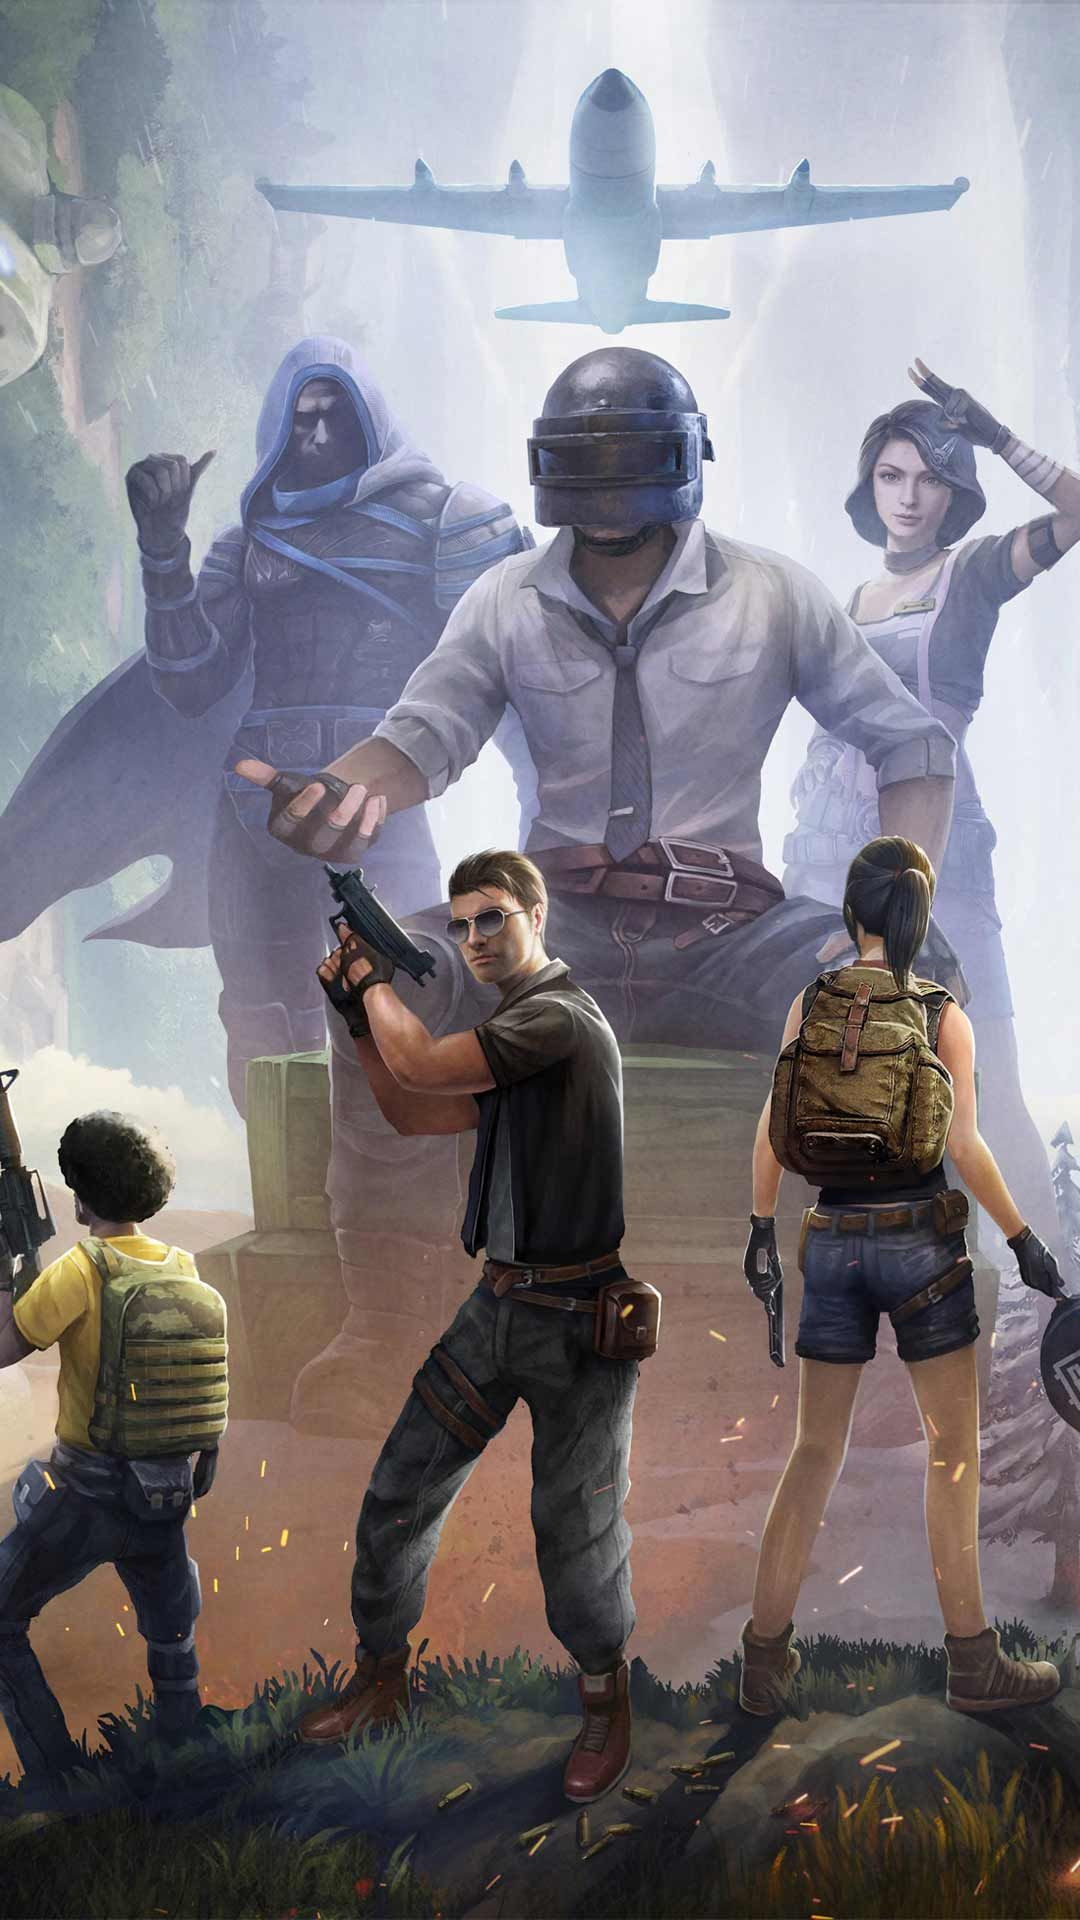 20 Pubg Mobile Wallpapers Full Hd Game Characters Art Photo Download For Android Pho Mobile Wallpaper Android Android Phone Backgrounds Joker Iphone Wallpaper